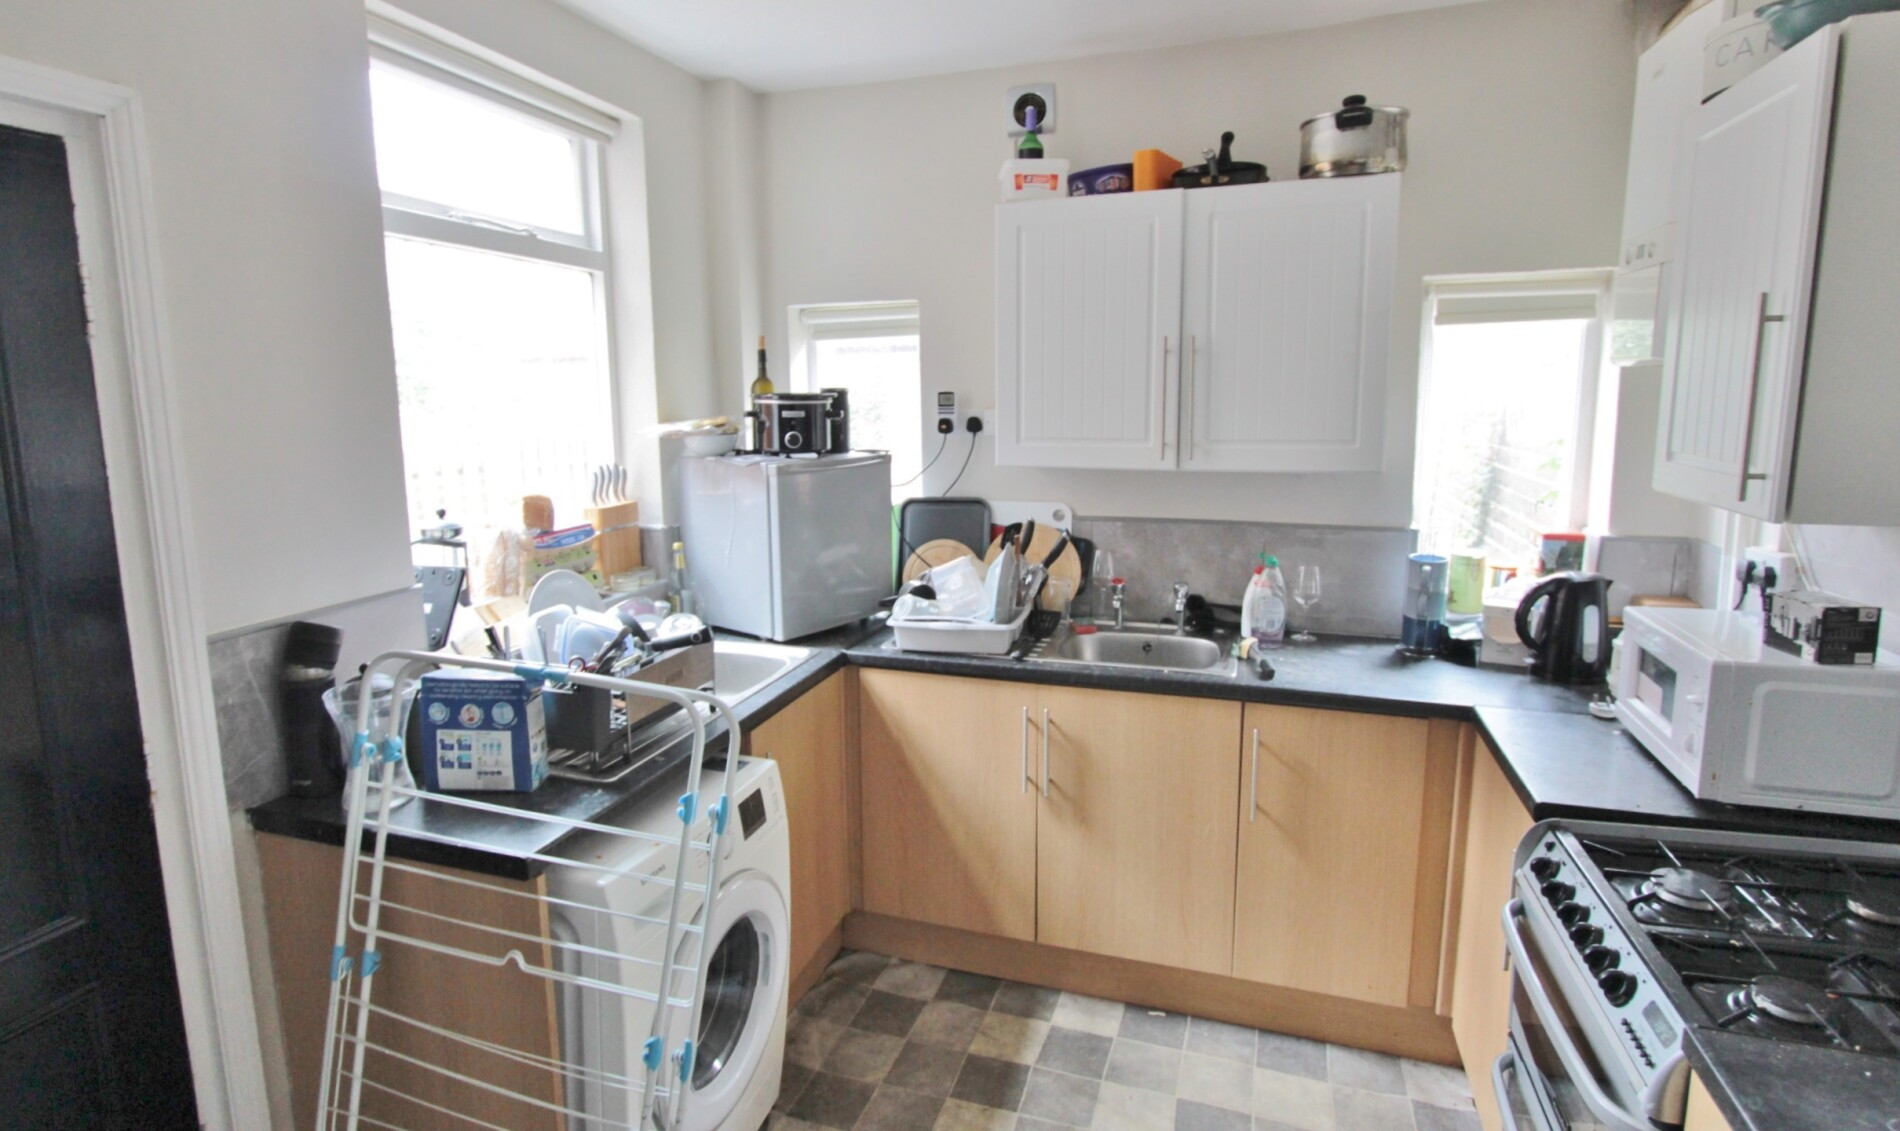 6 bedroom student house in Ecclesall, Sheffield